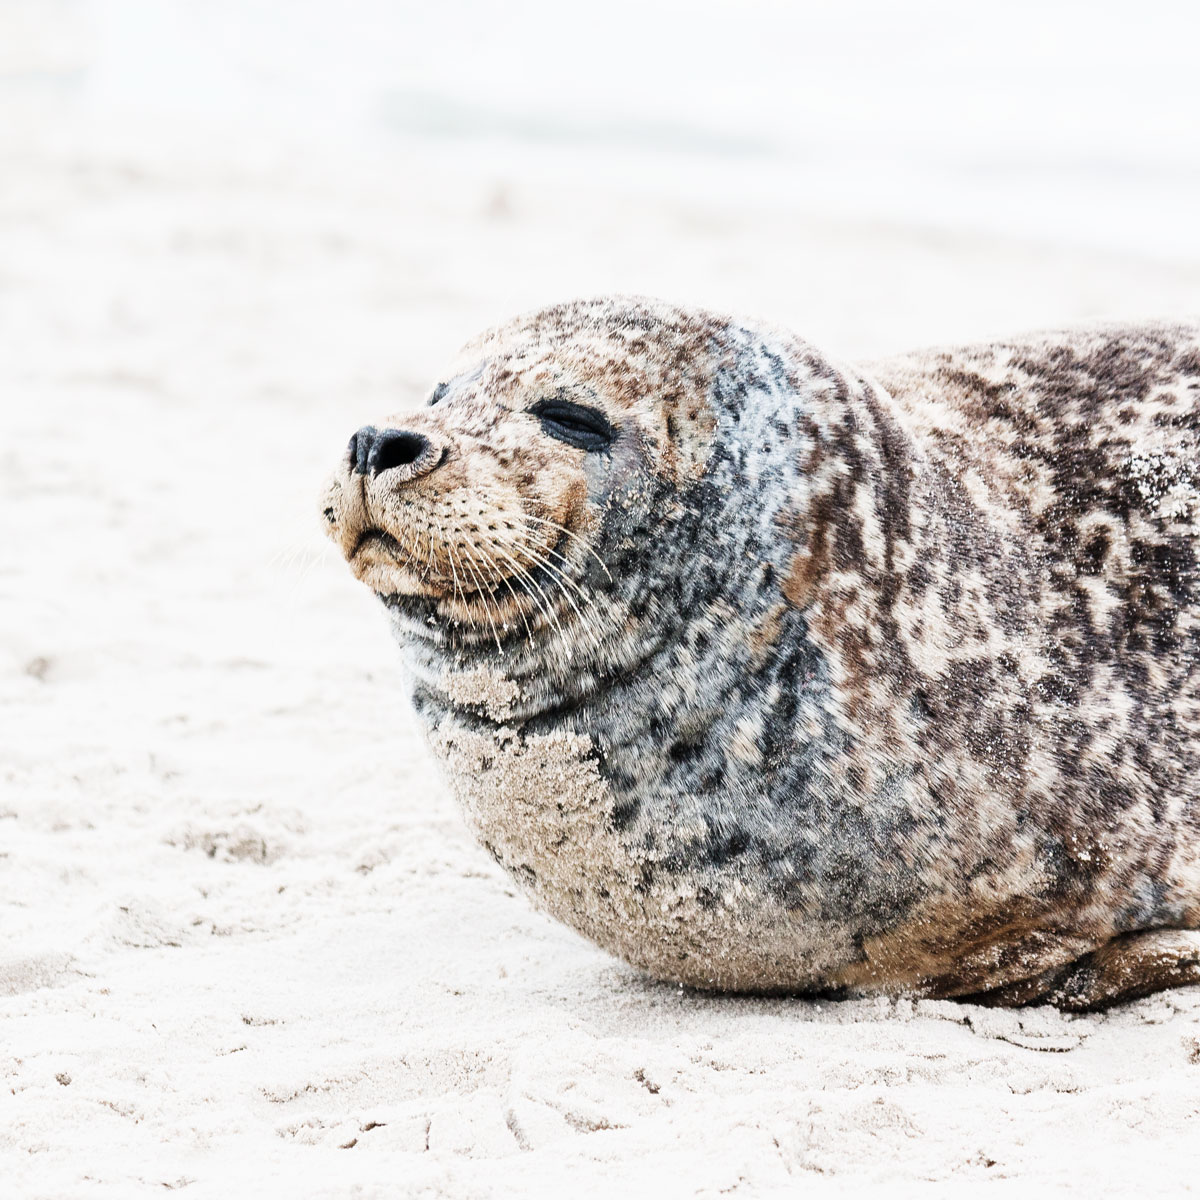 Spot wild seals in Denmark at Grenen, Skagen